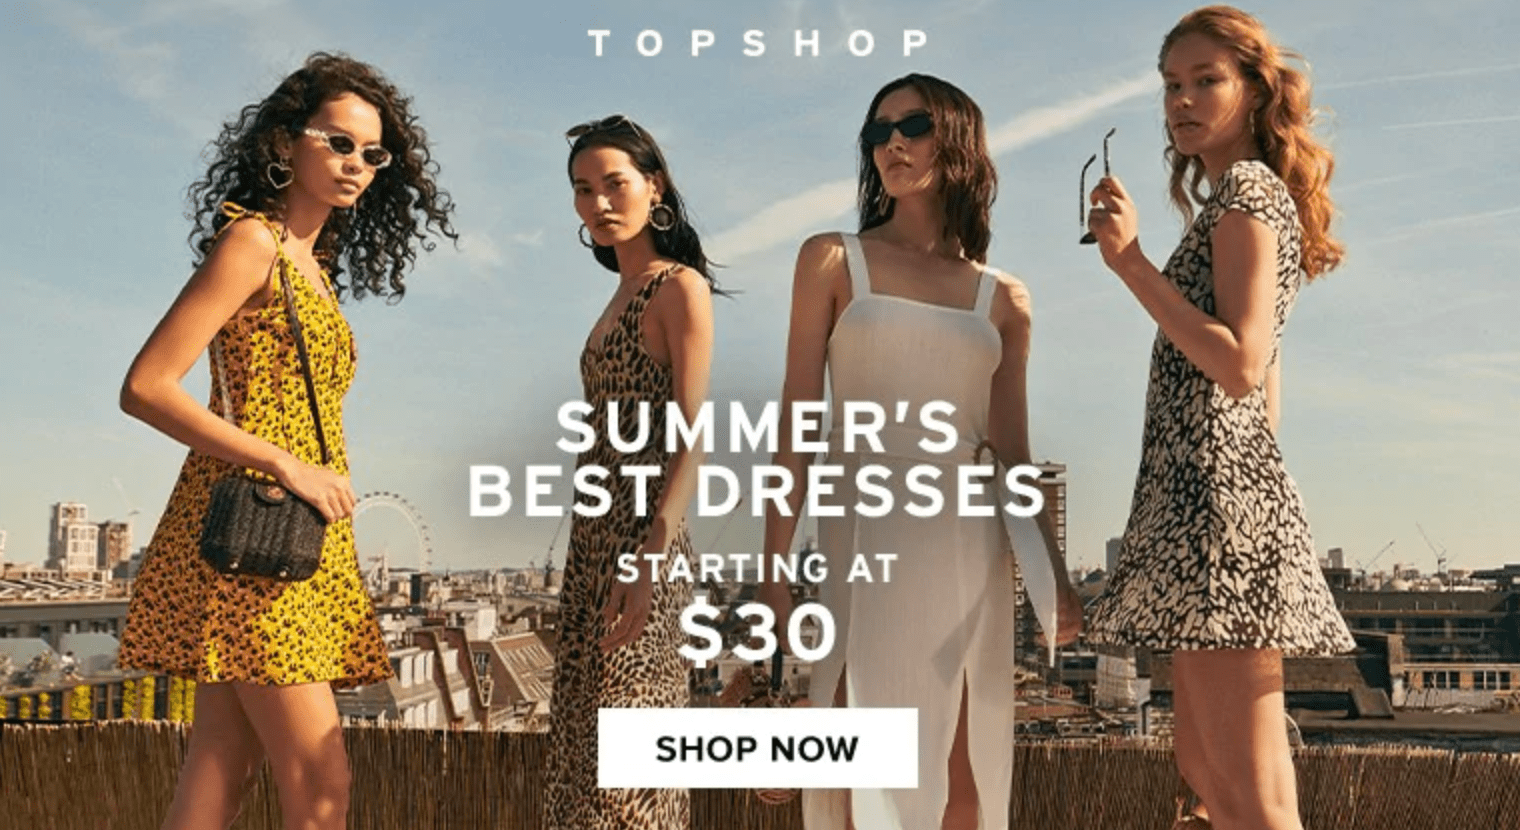 Hudson's Bay Canada Sale: $30 Topshop Dresses + Clearance on Kids & Baby Items